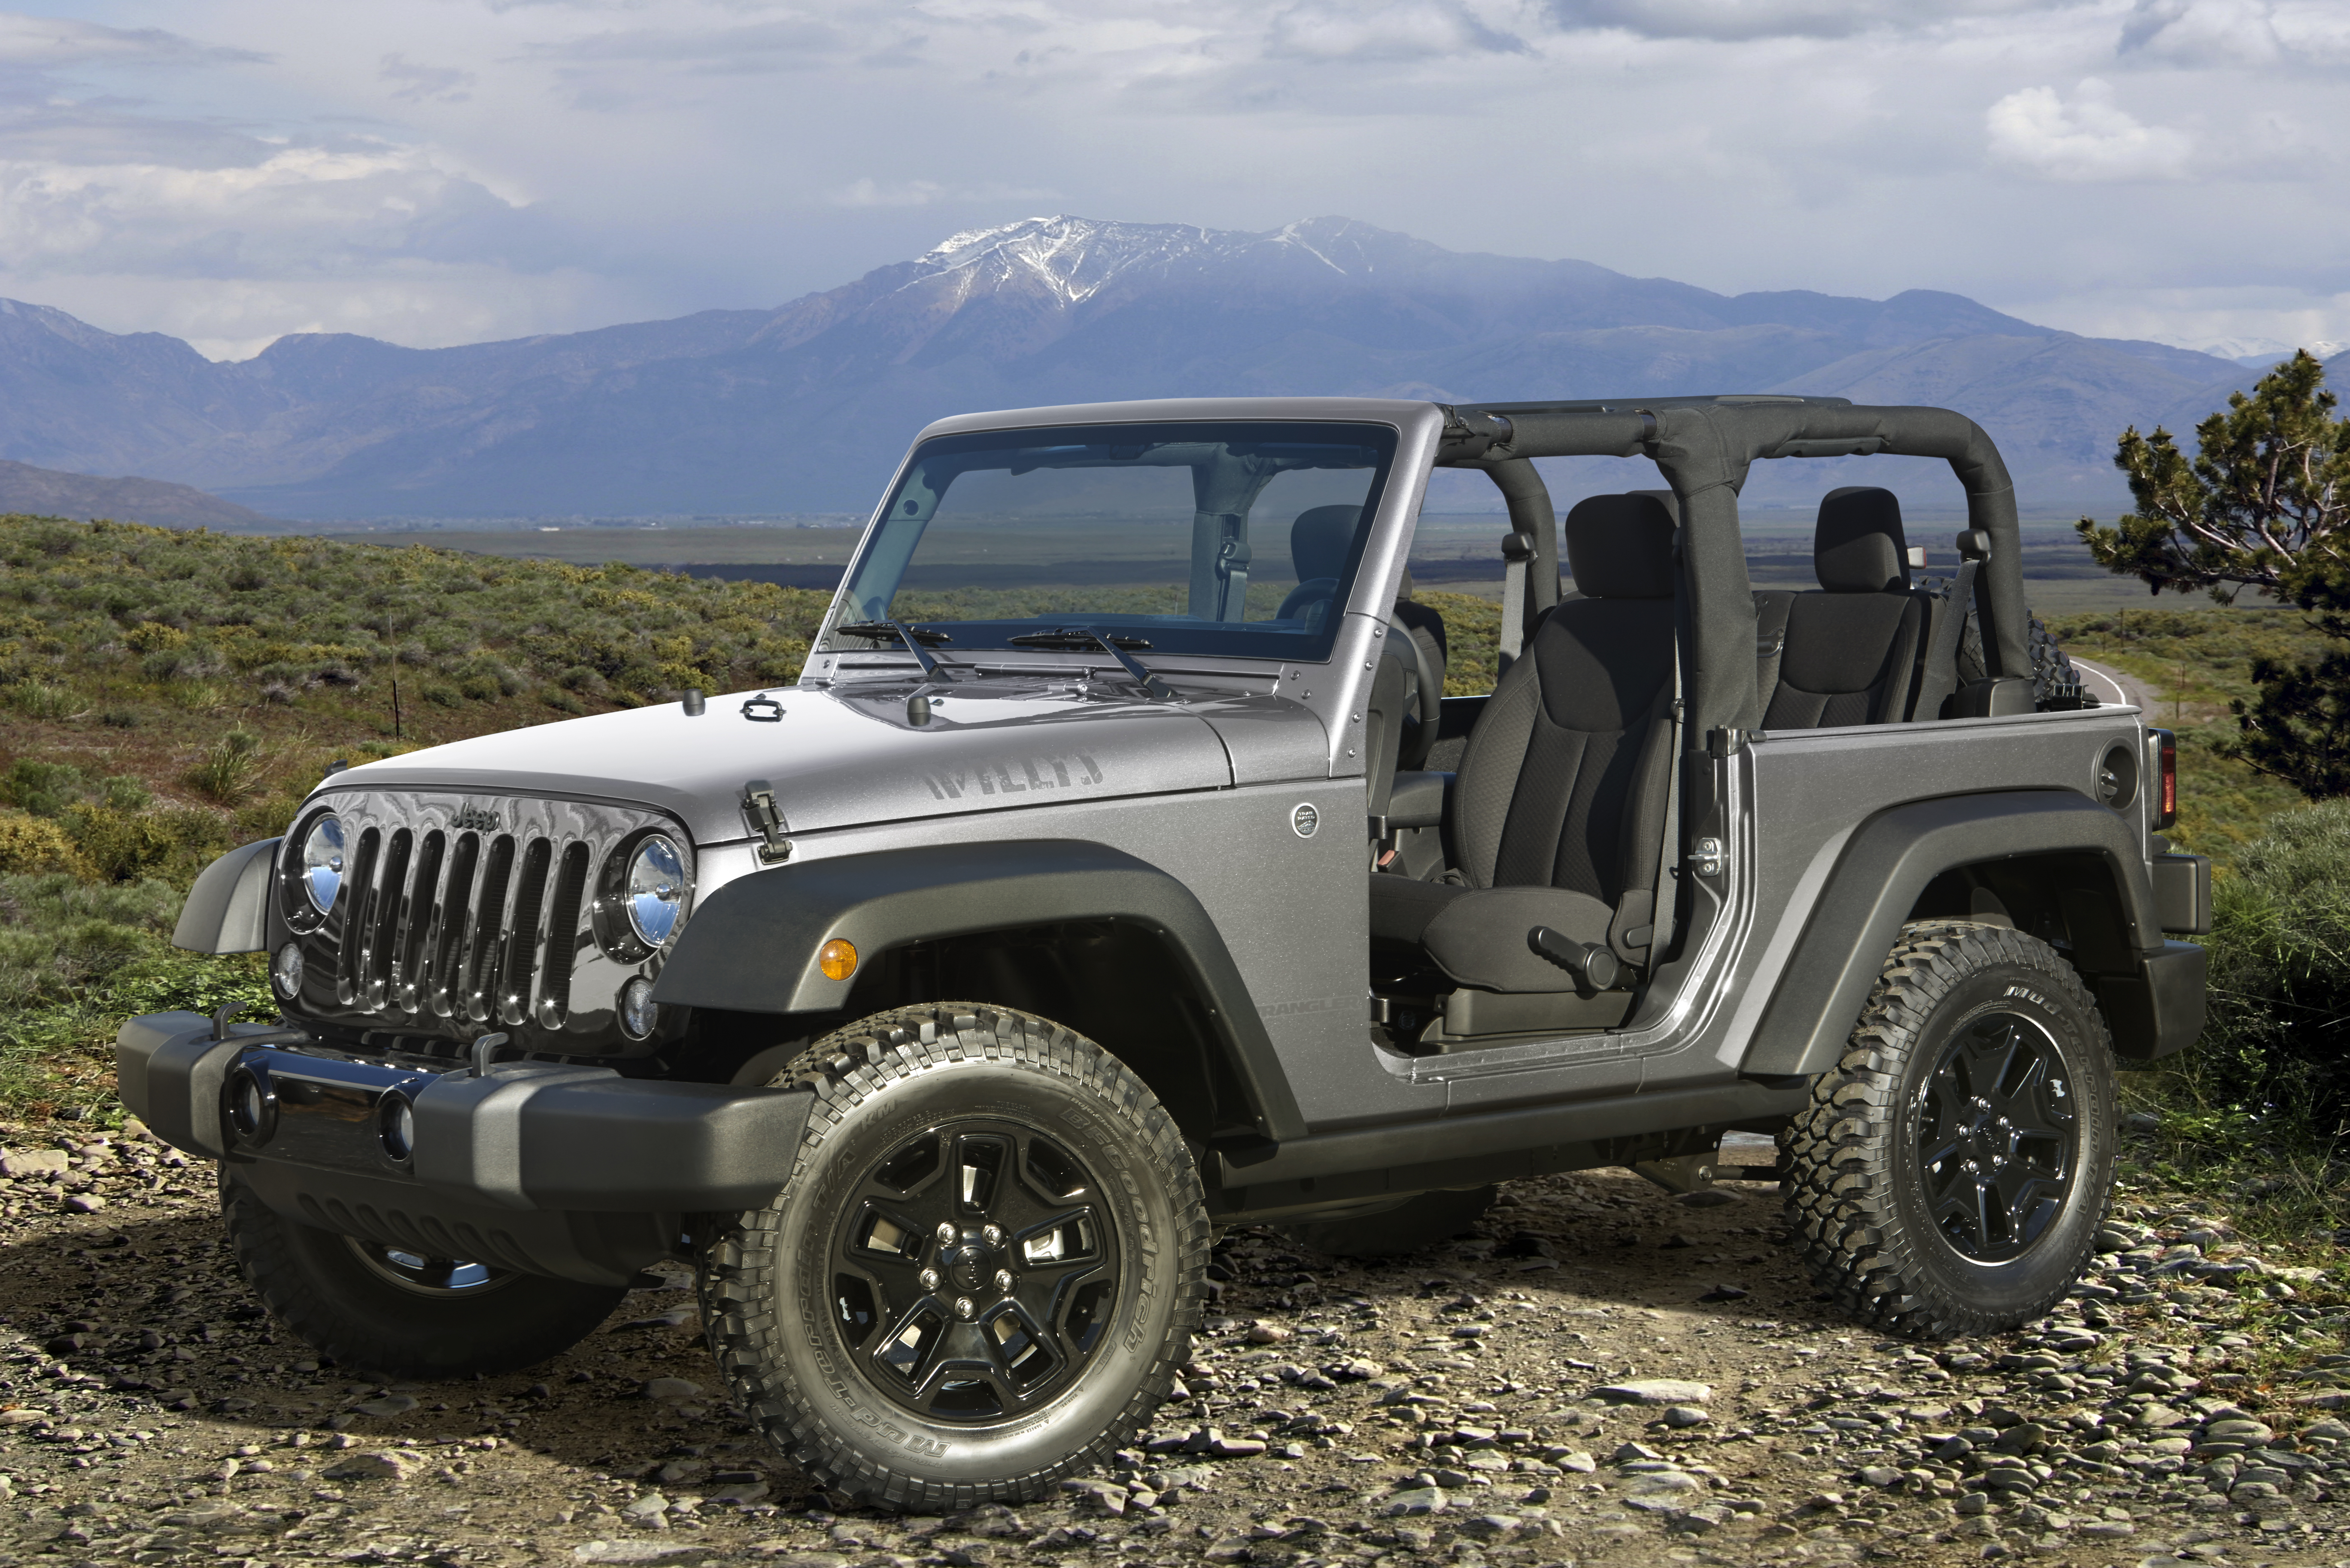 most has chance off one this sema your product insane ever jeeps unlimited only road for market specially jeep built jeepers of the rubicon that been here is own with supercharged to wrangler